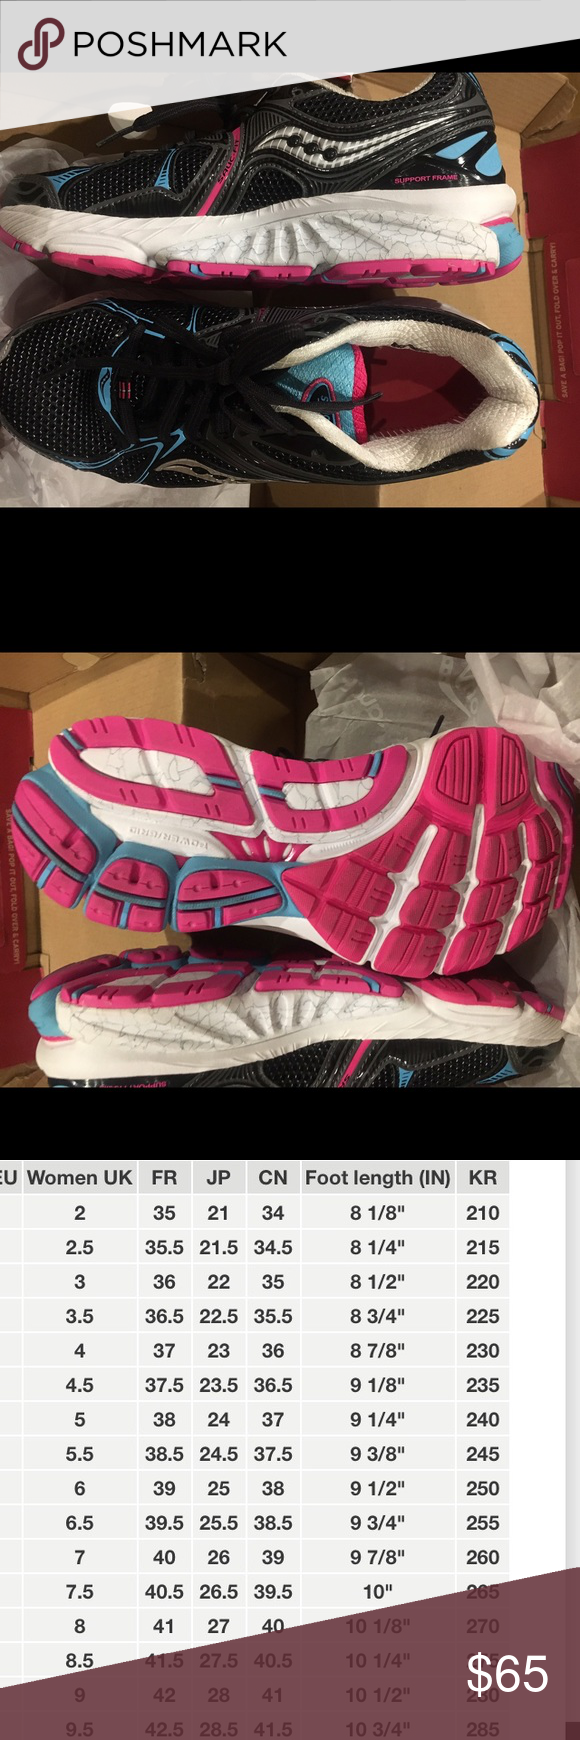 755a028f9ded Saucony Hurricane 16 Women Running Shoes Style Hurricane 16 women running  shoes (black blue pink)  never been worn. Slightly dirty on the bottom of  the ...